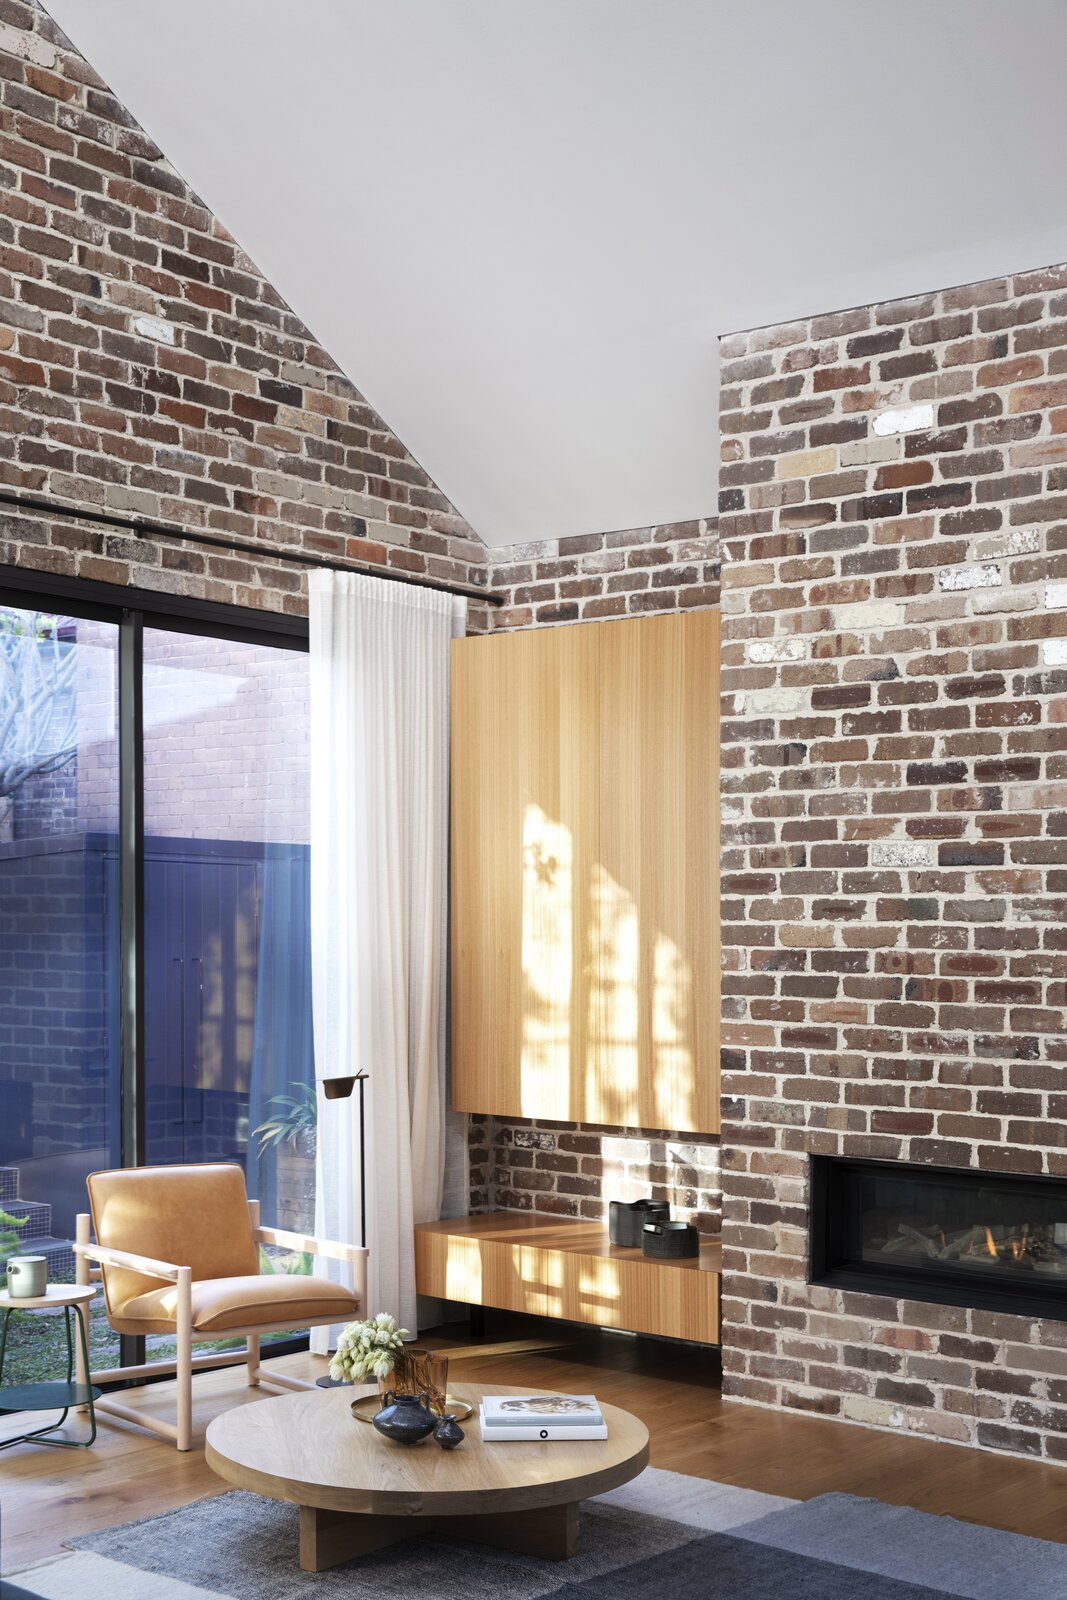 Cnr Virginia by Studio Prineas exposed brick wall and wood built-in cabinets